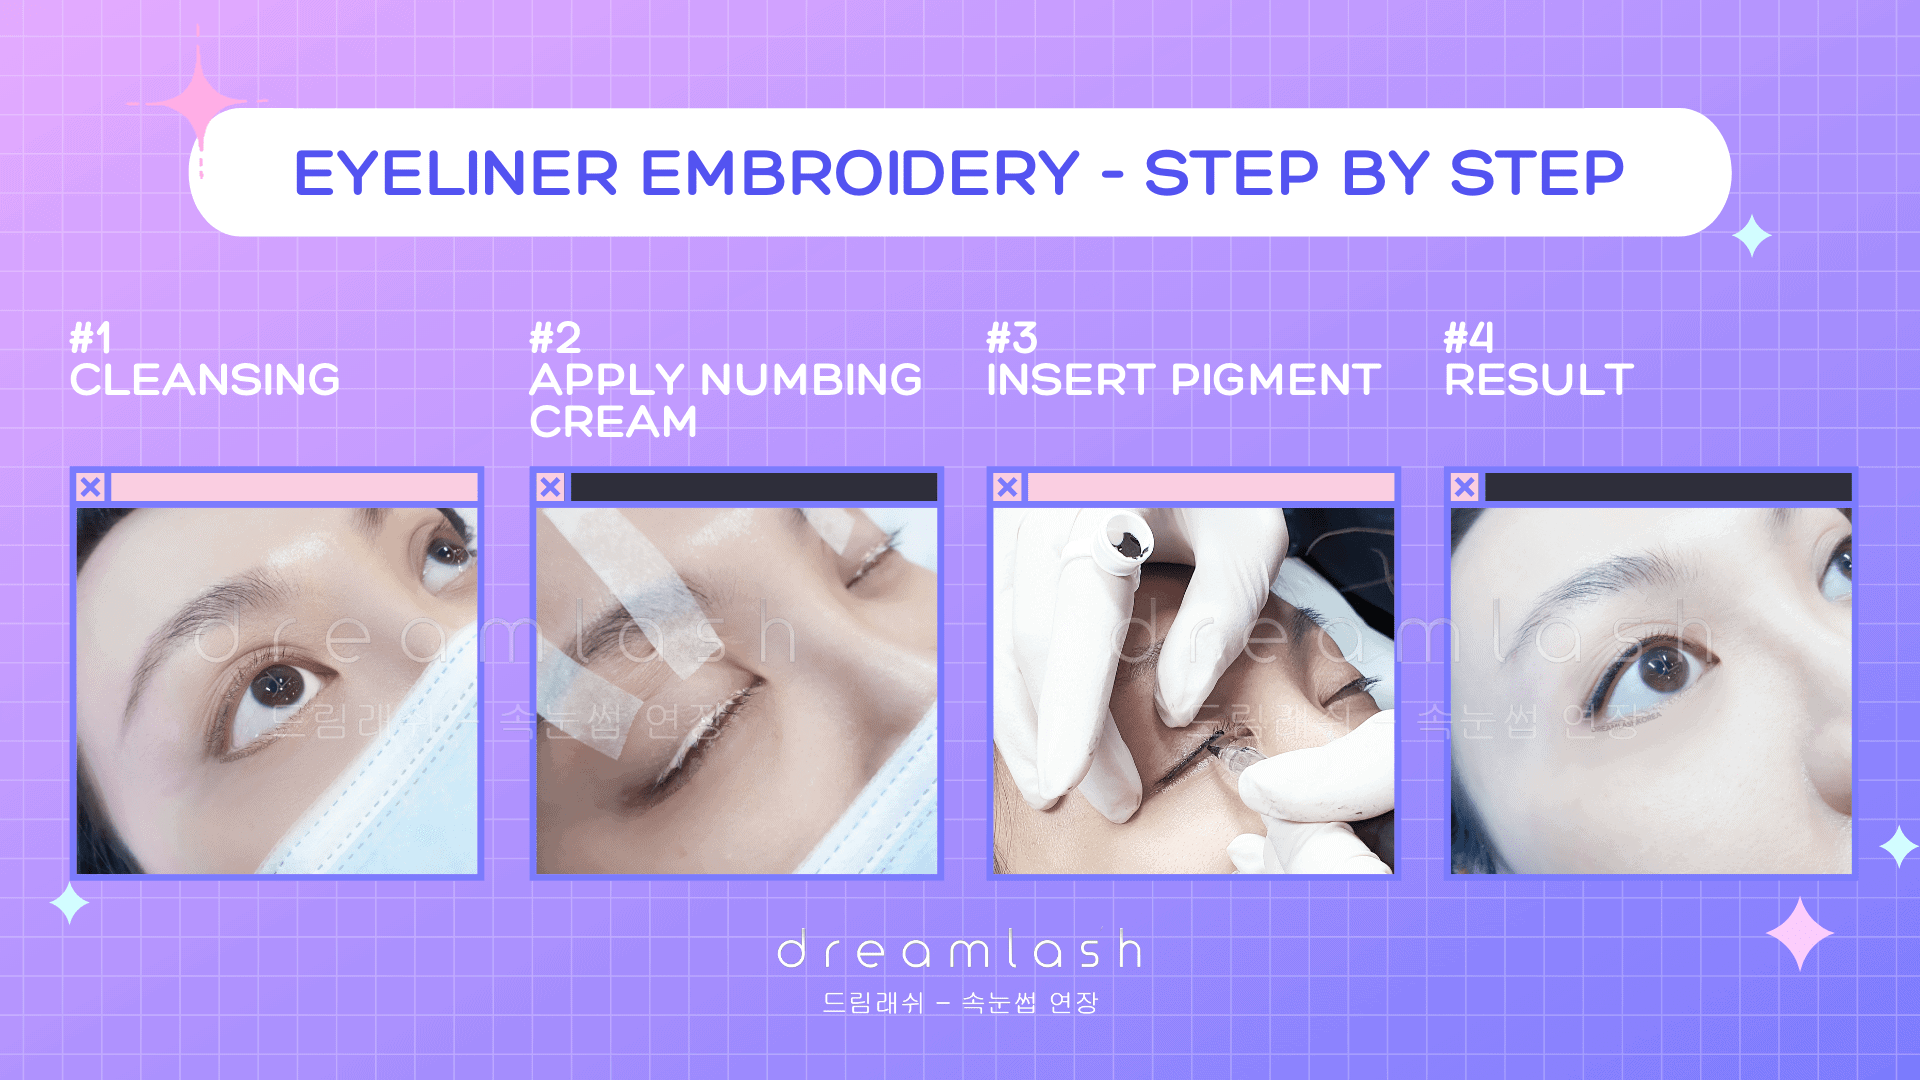 Eyeliner Embroidery Step by Step